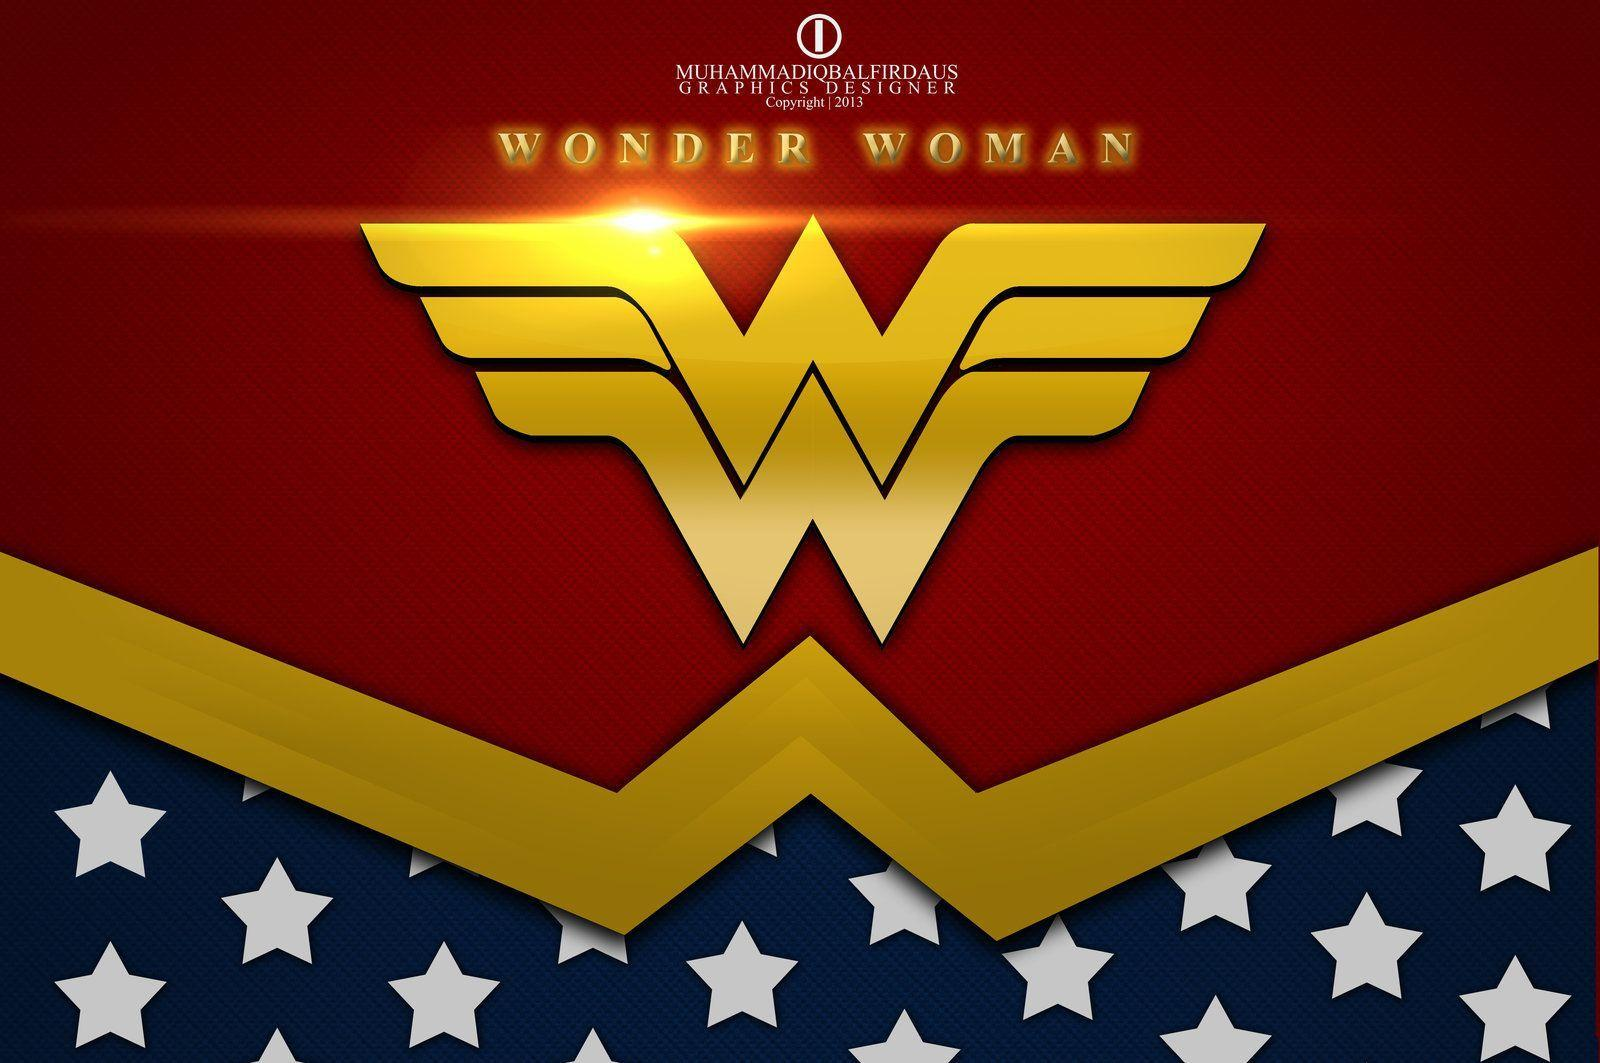 Wonder Woman Wallpaper HD - WallpaperSafari